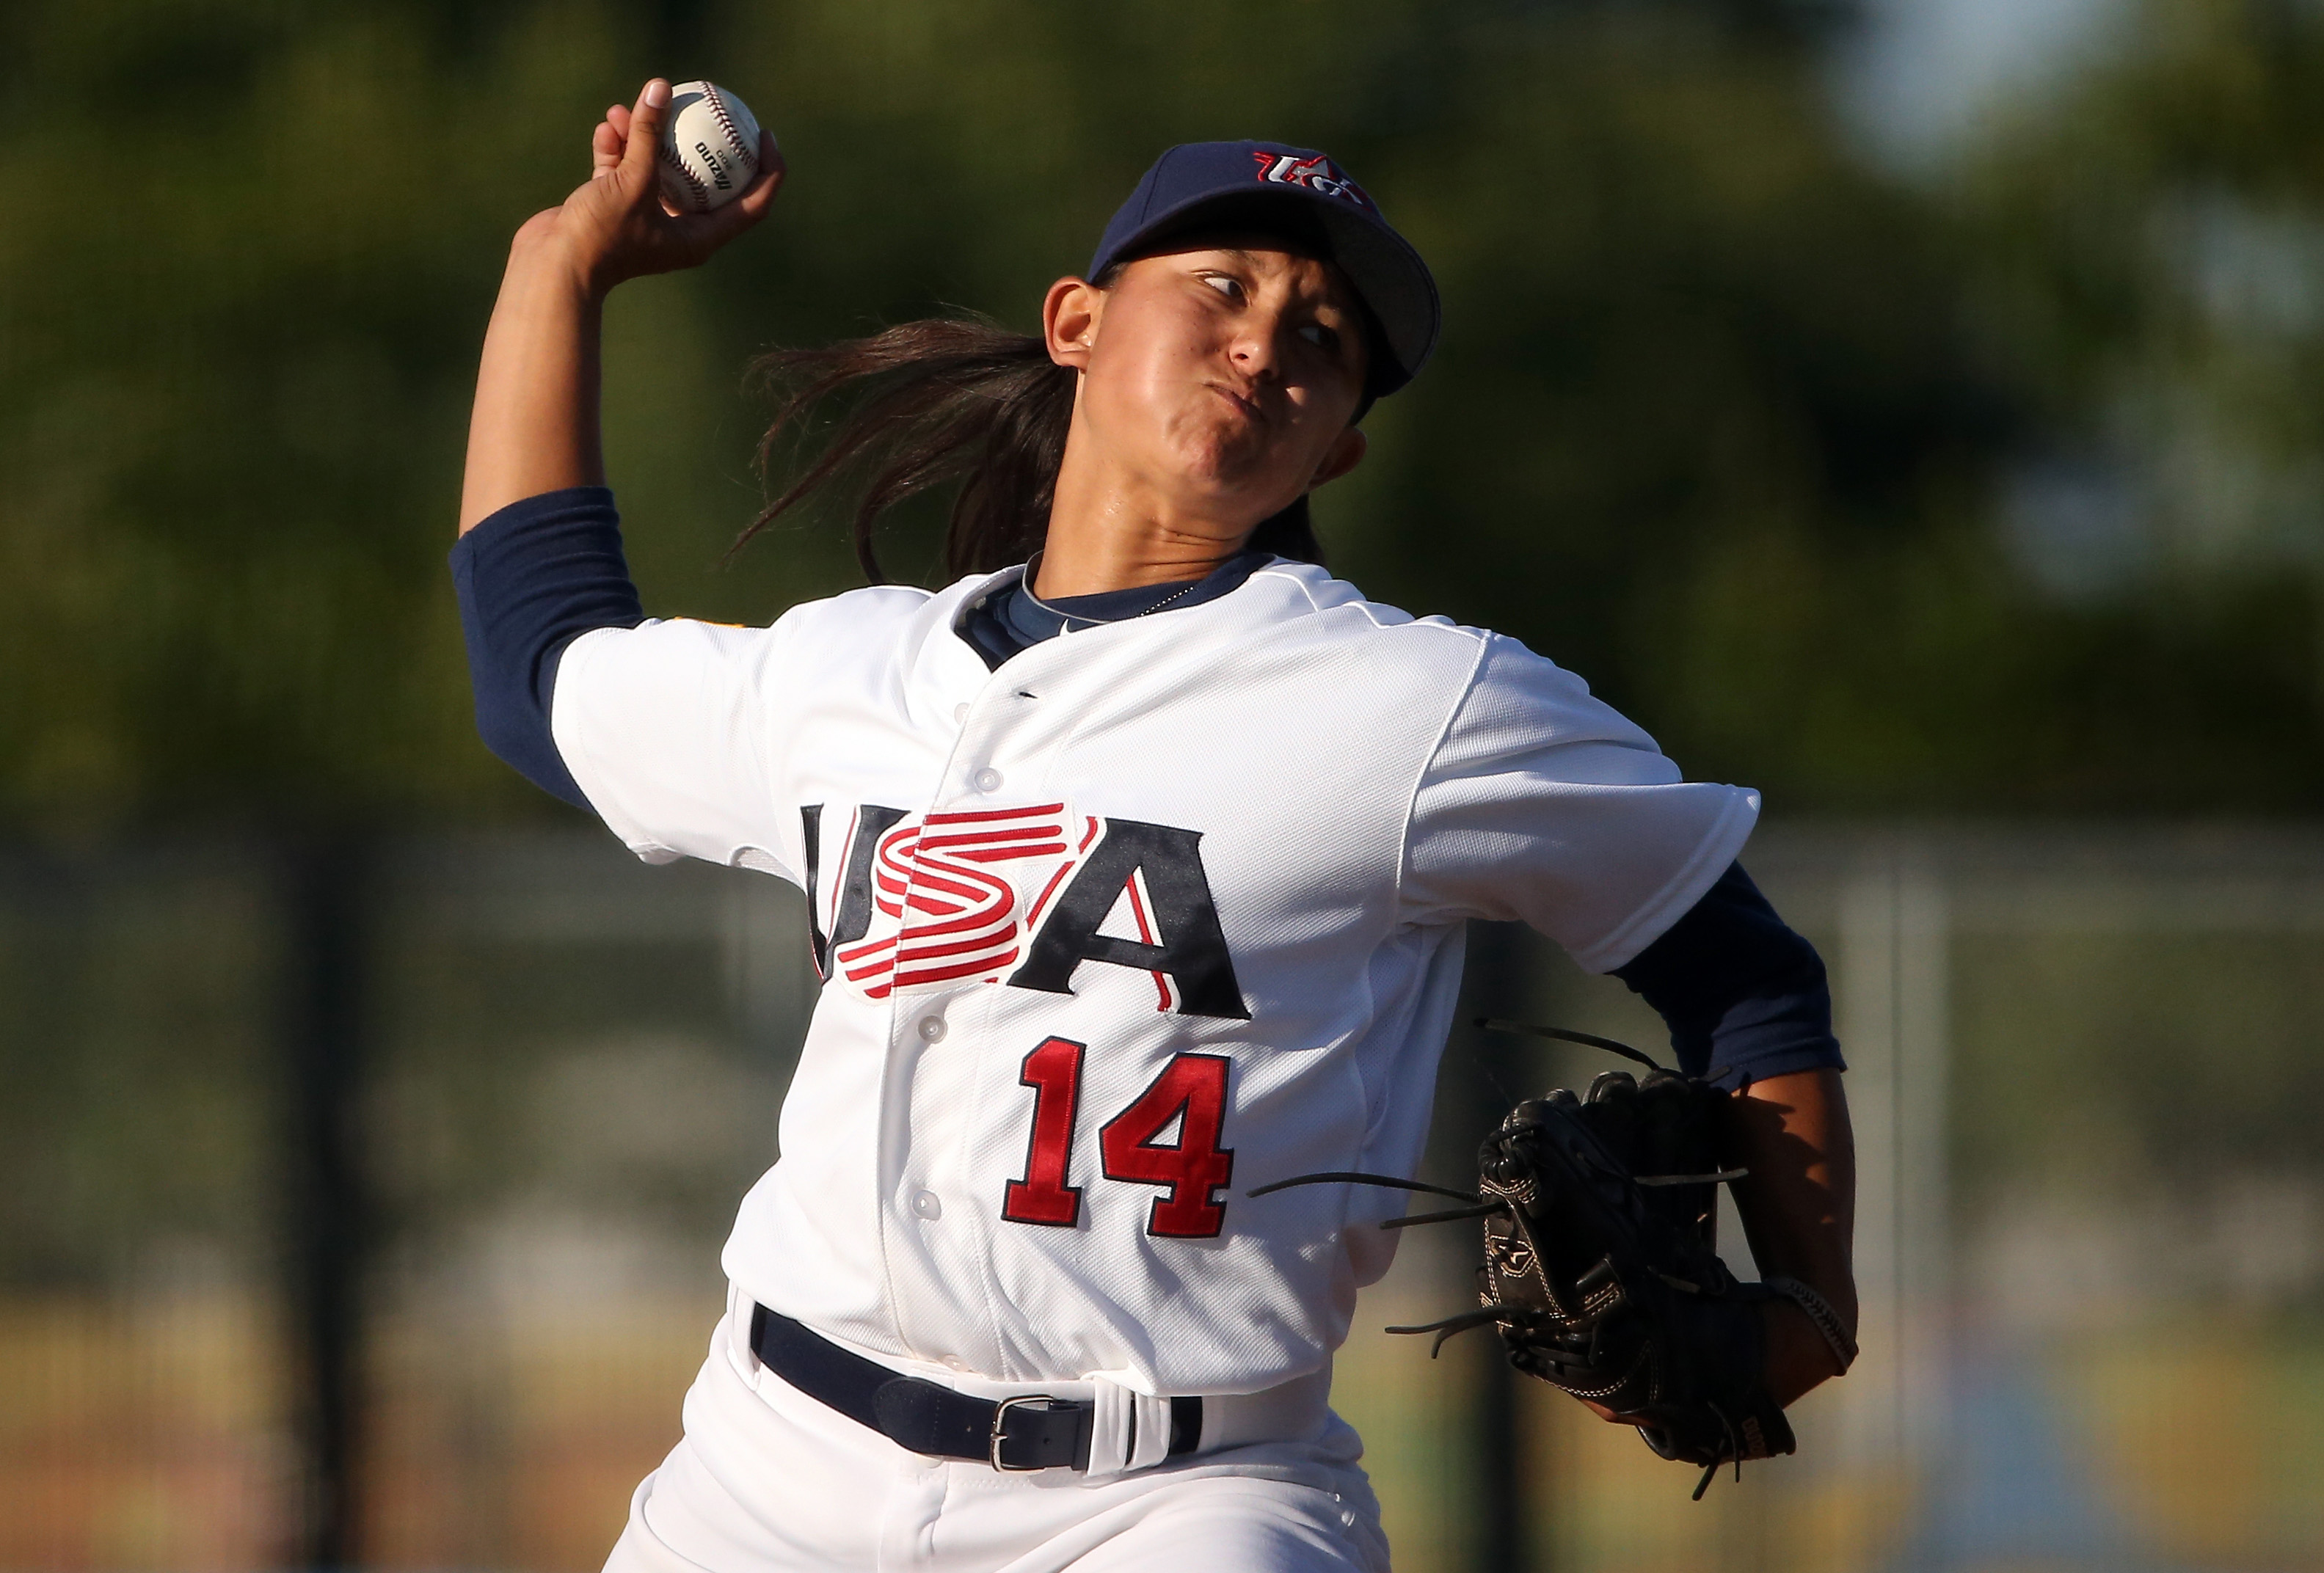 United States starting pitcher Kelsie Whitmore delivers a pitch in the first inning against Cuba in Toronto, Ontario, Canada, on Jul 22, 2015